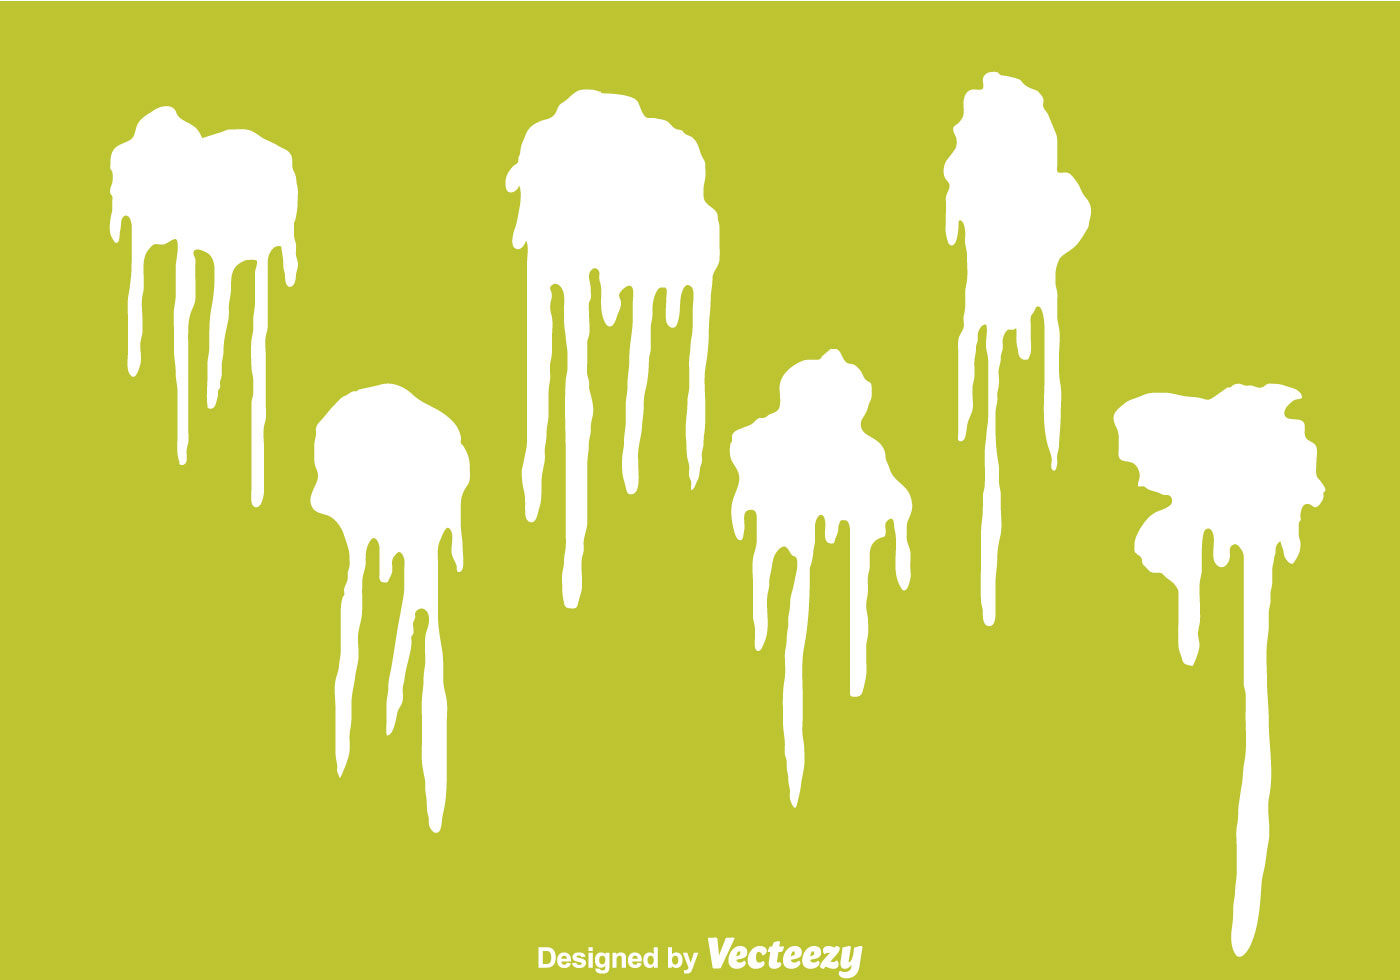 dripping paint wallpaper - photo #32